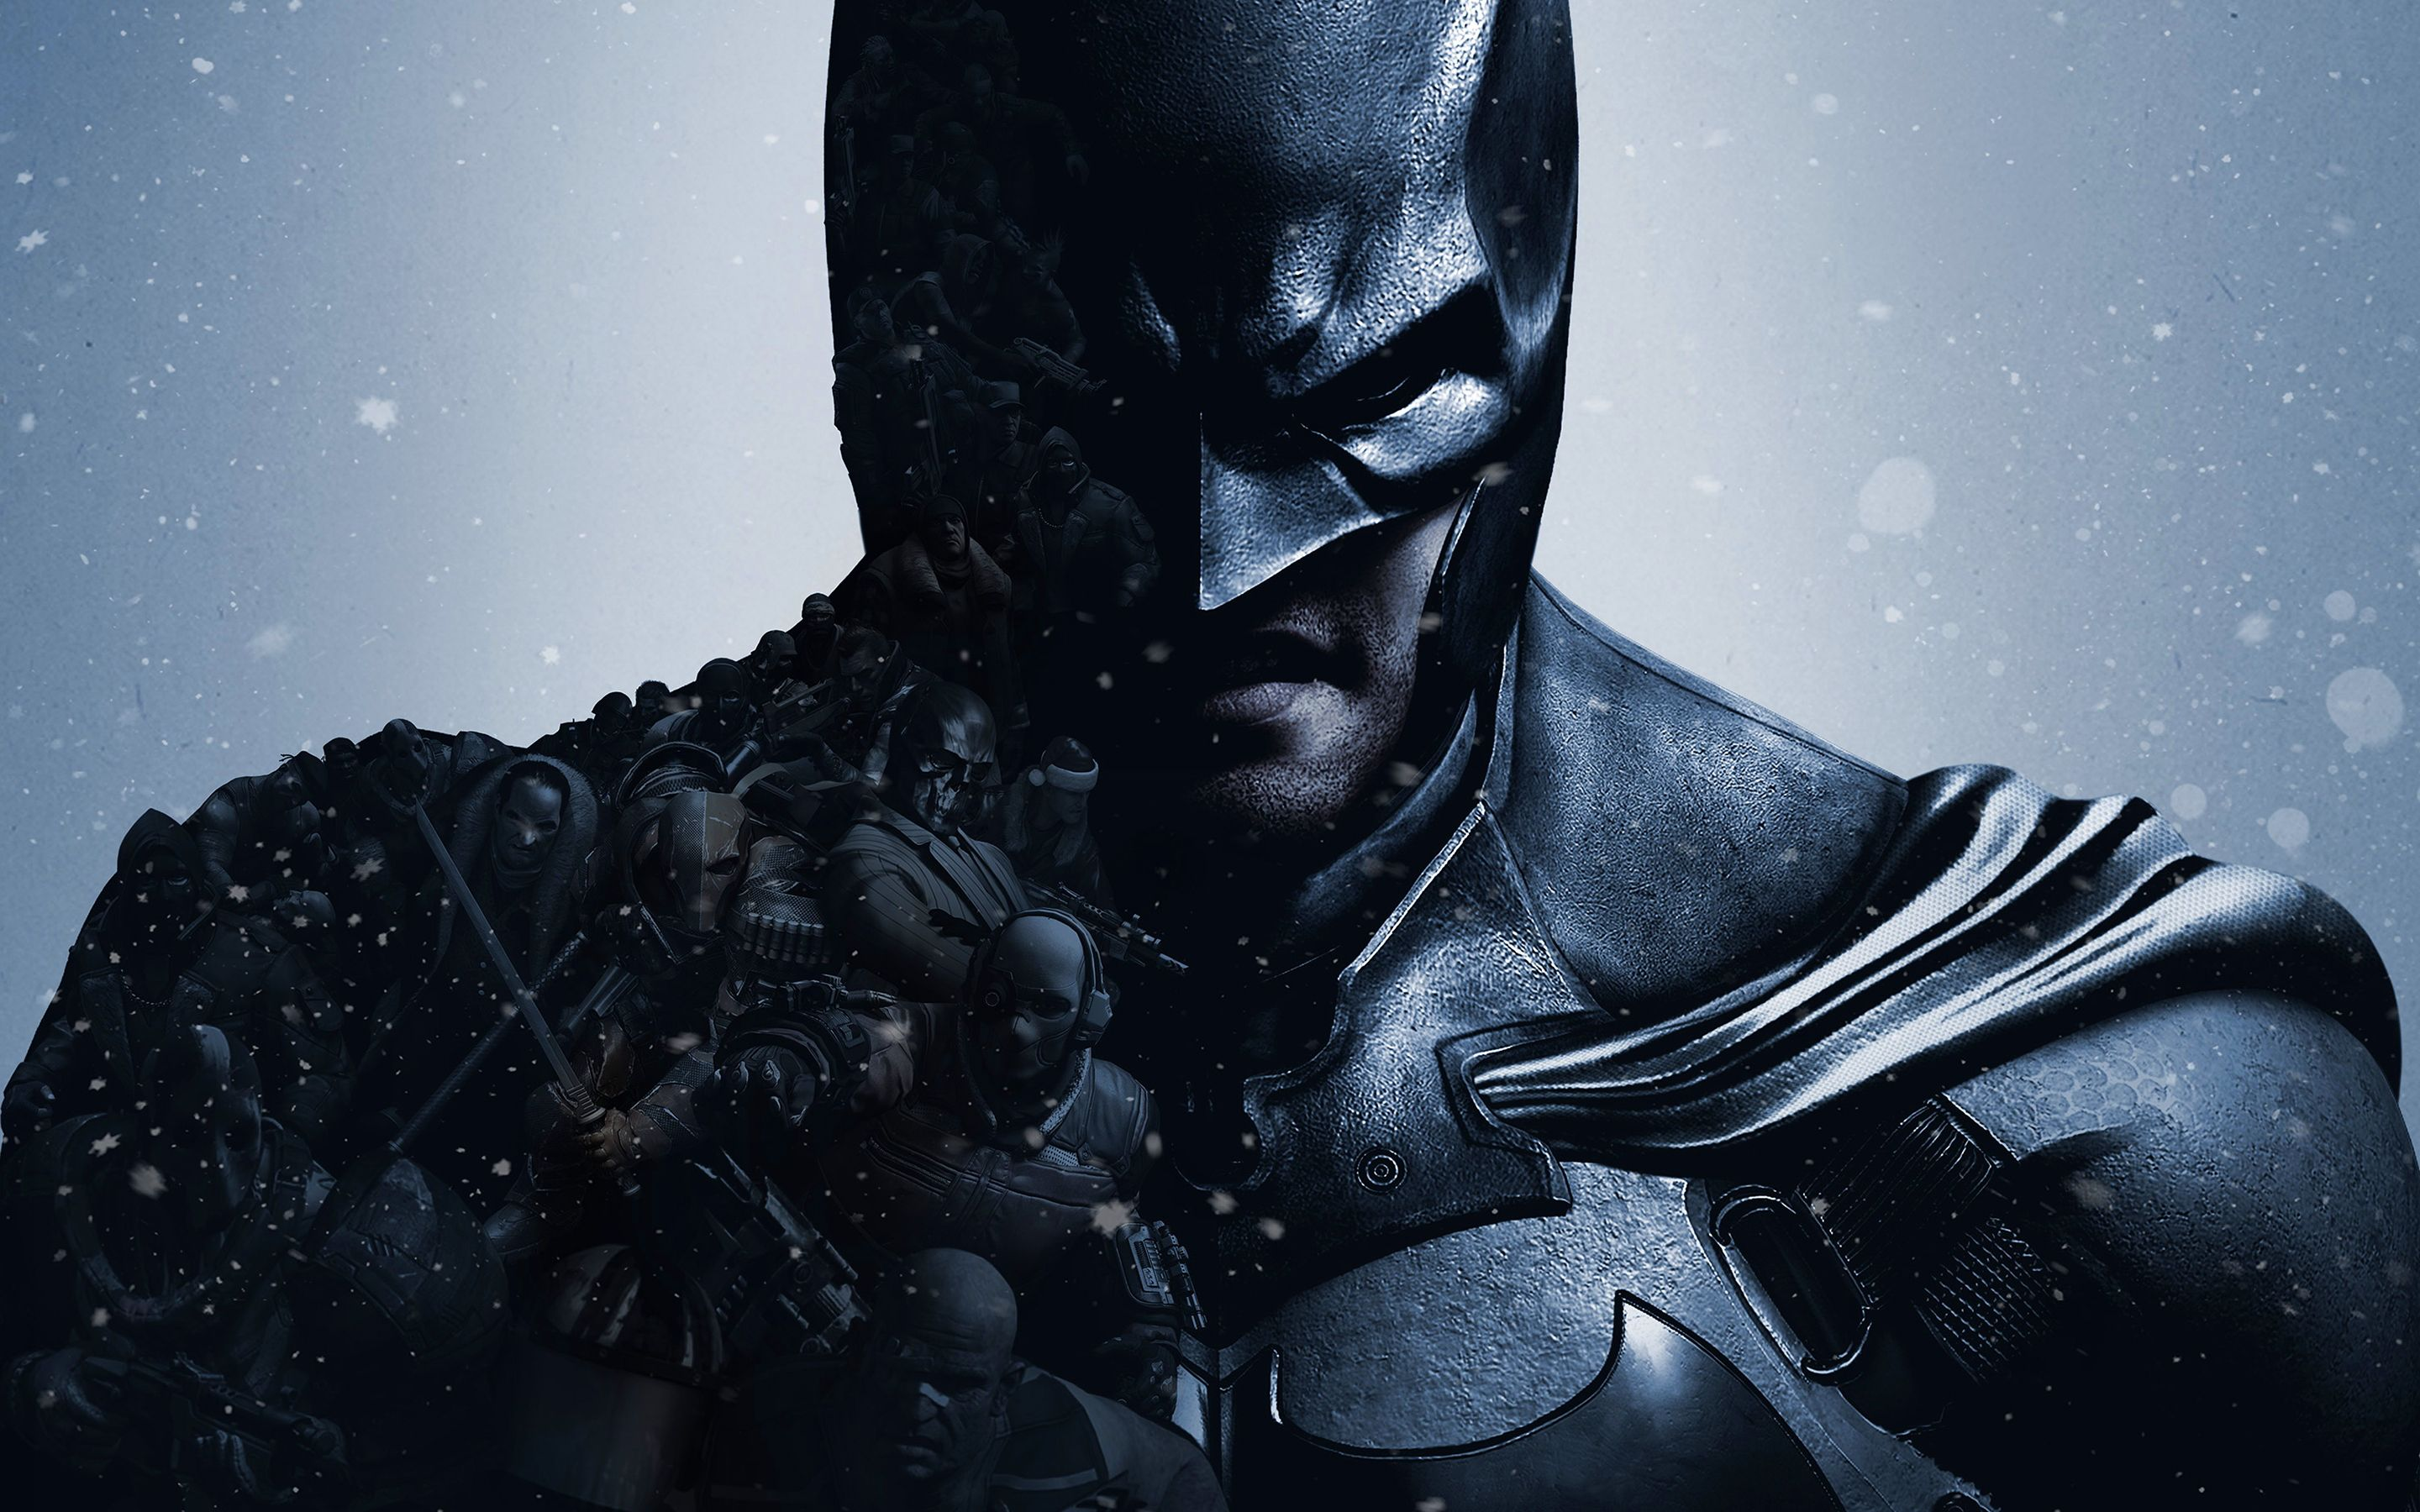 batman hd wallpapers | shining stuff - hd wallparers - top 10